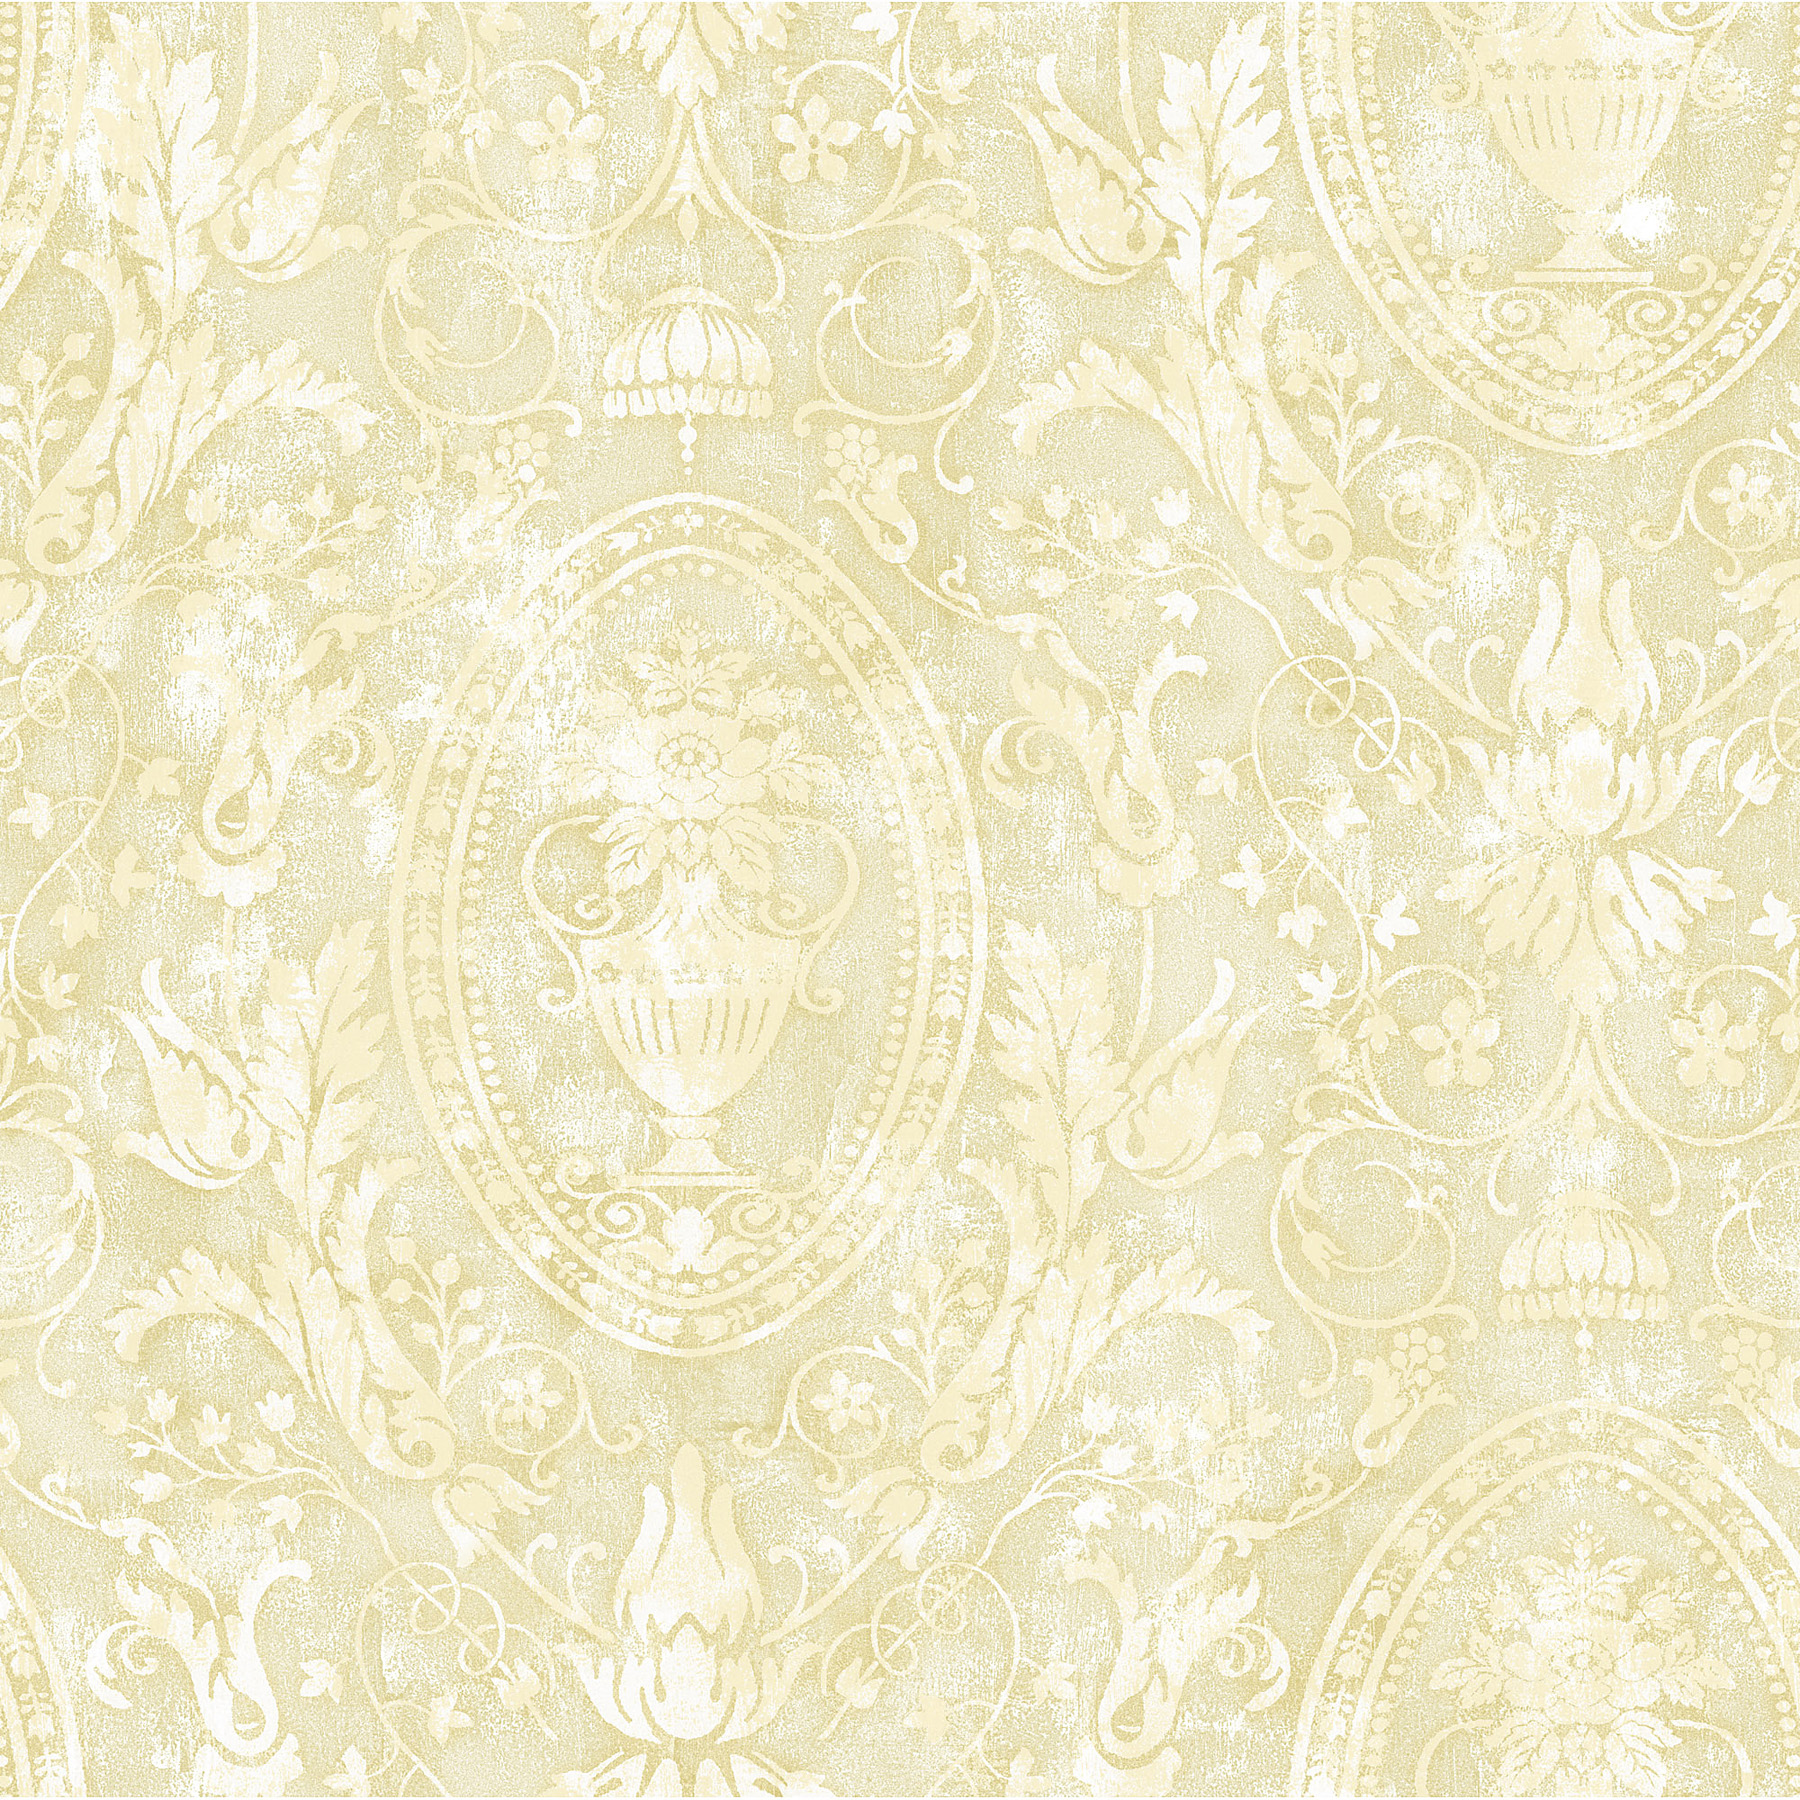 Picture of Bronze Urn Acanthus Leaf Cameo Wallpaper